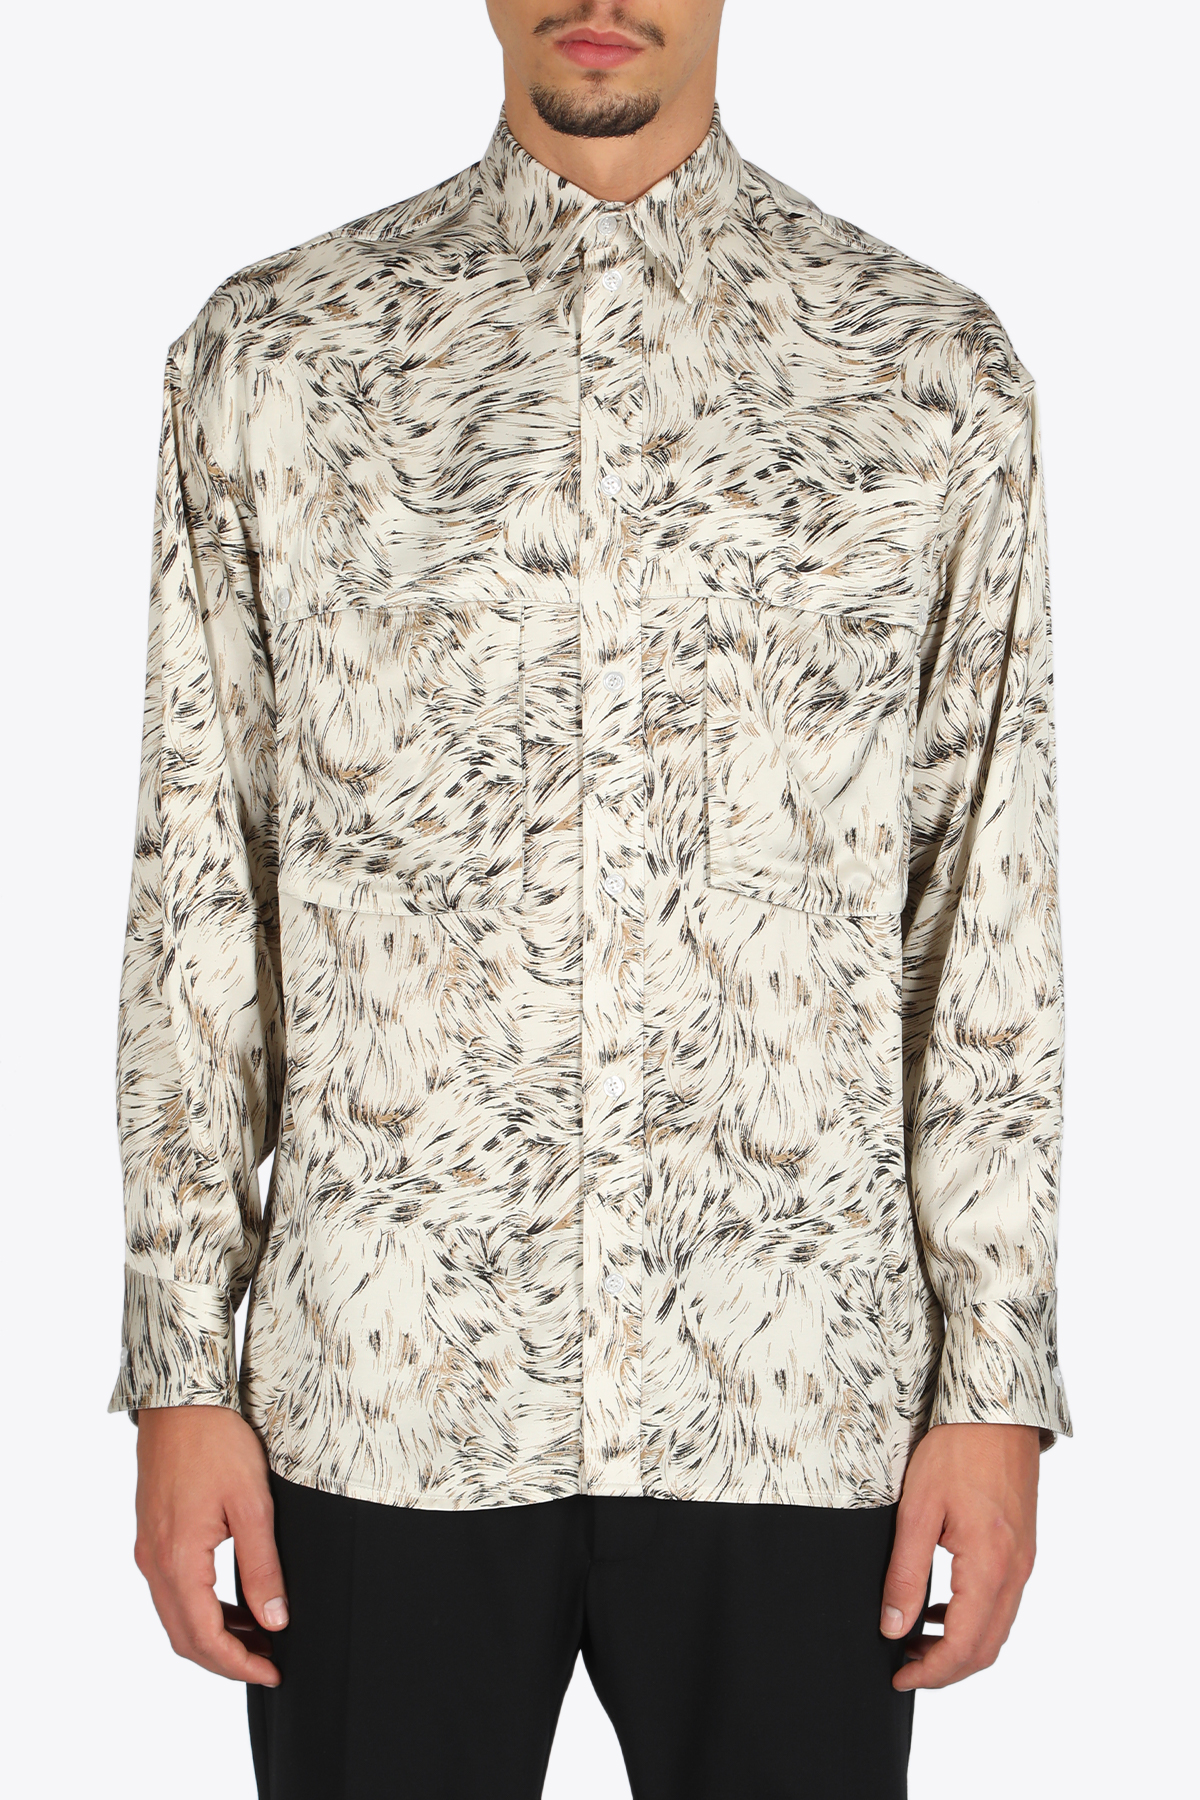 FURPRINT POCKET DETAILED SHIRT OPENING CEREMONY | 6 | YMGA003F20FAB002 FURPRINT POCKETDETAILED6160